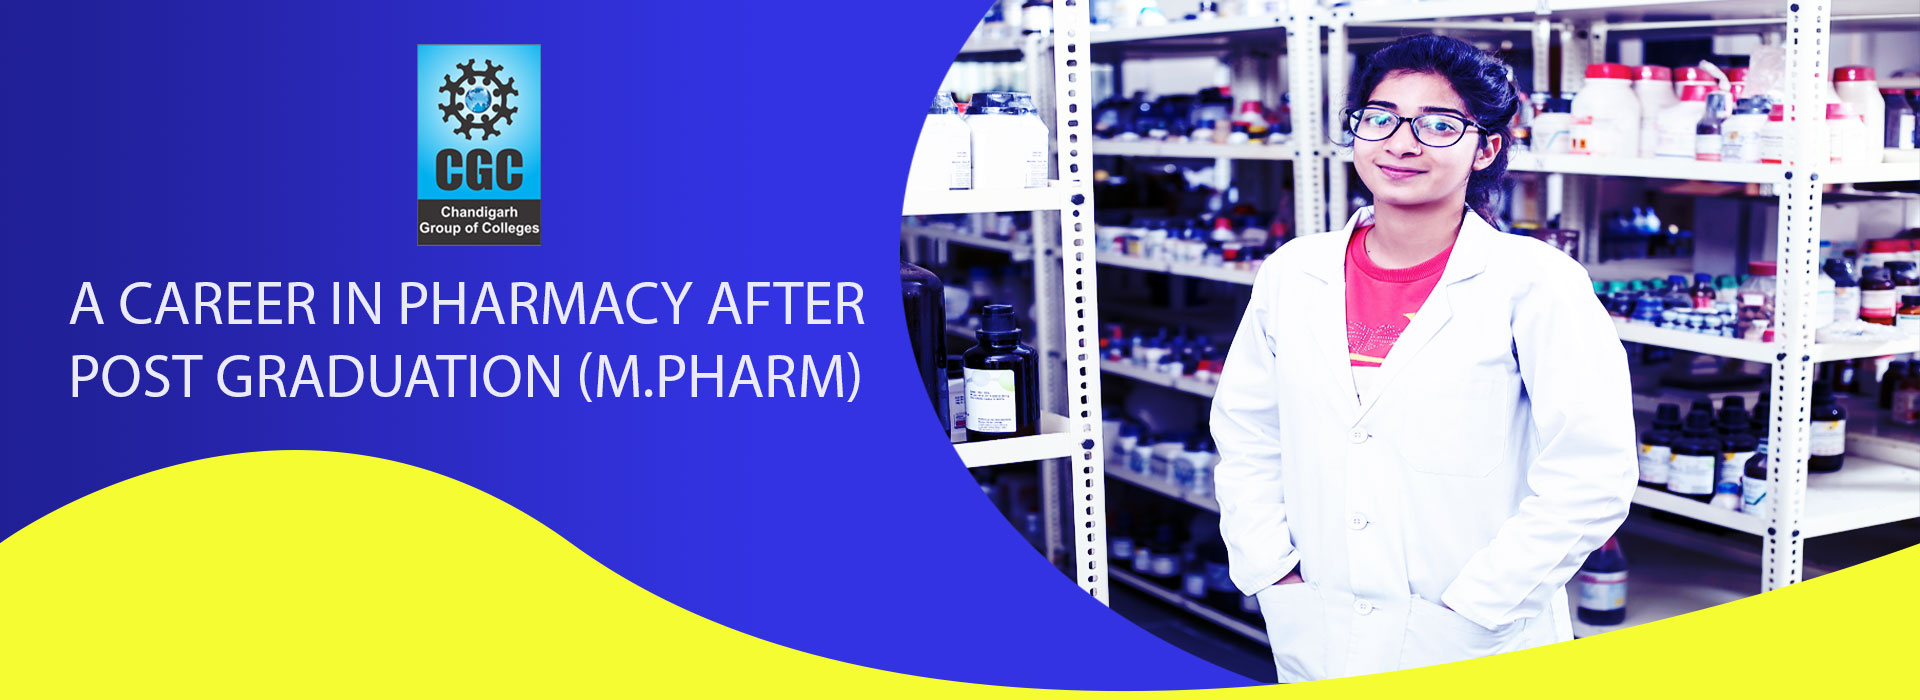 A Career in Pharmacy after Post Graduation (M.Pharm)